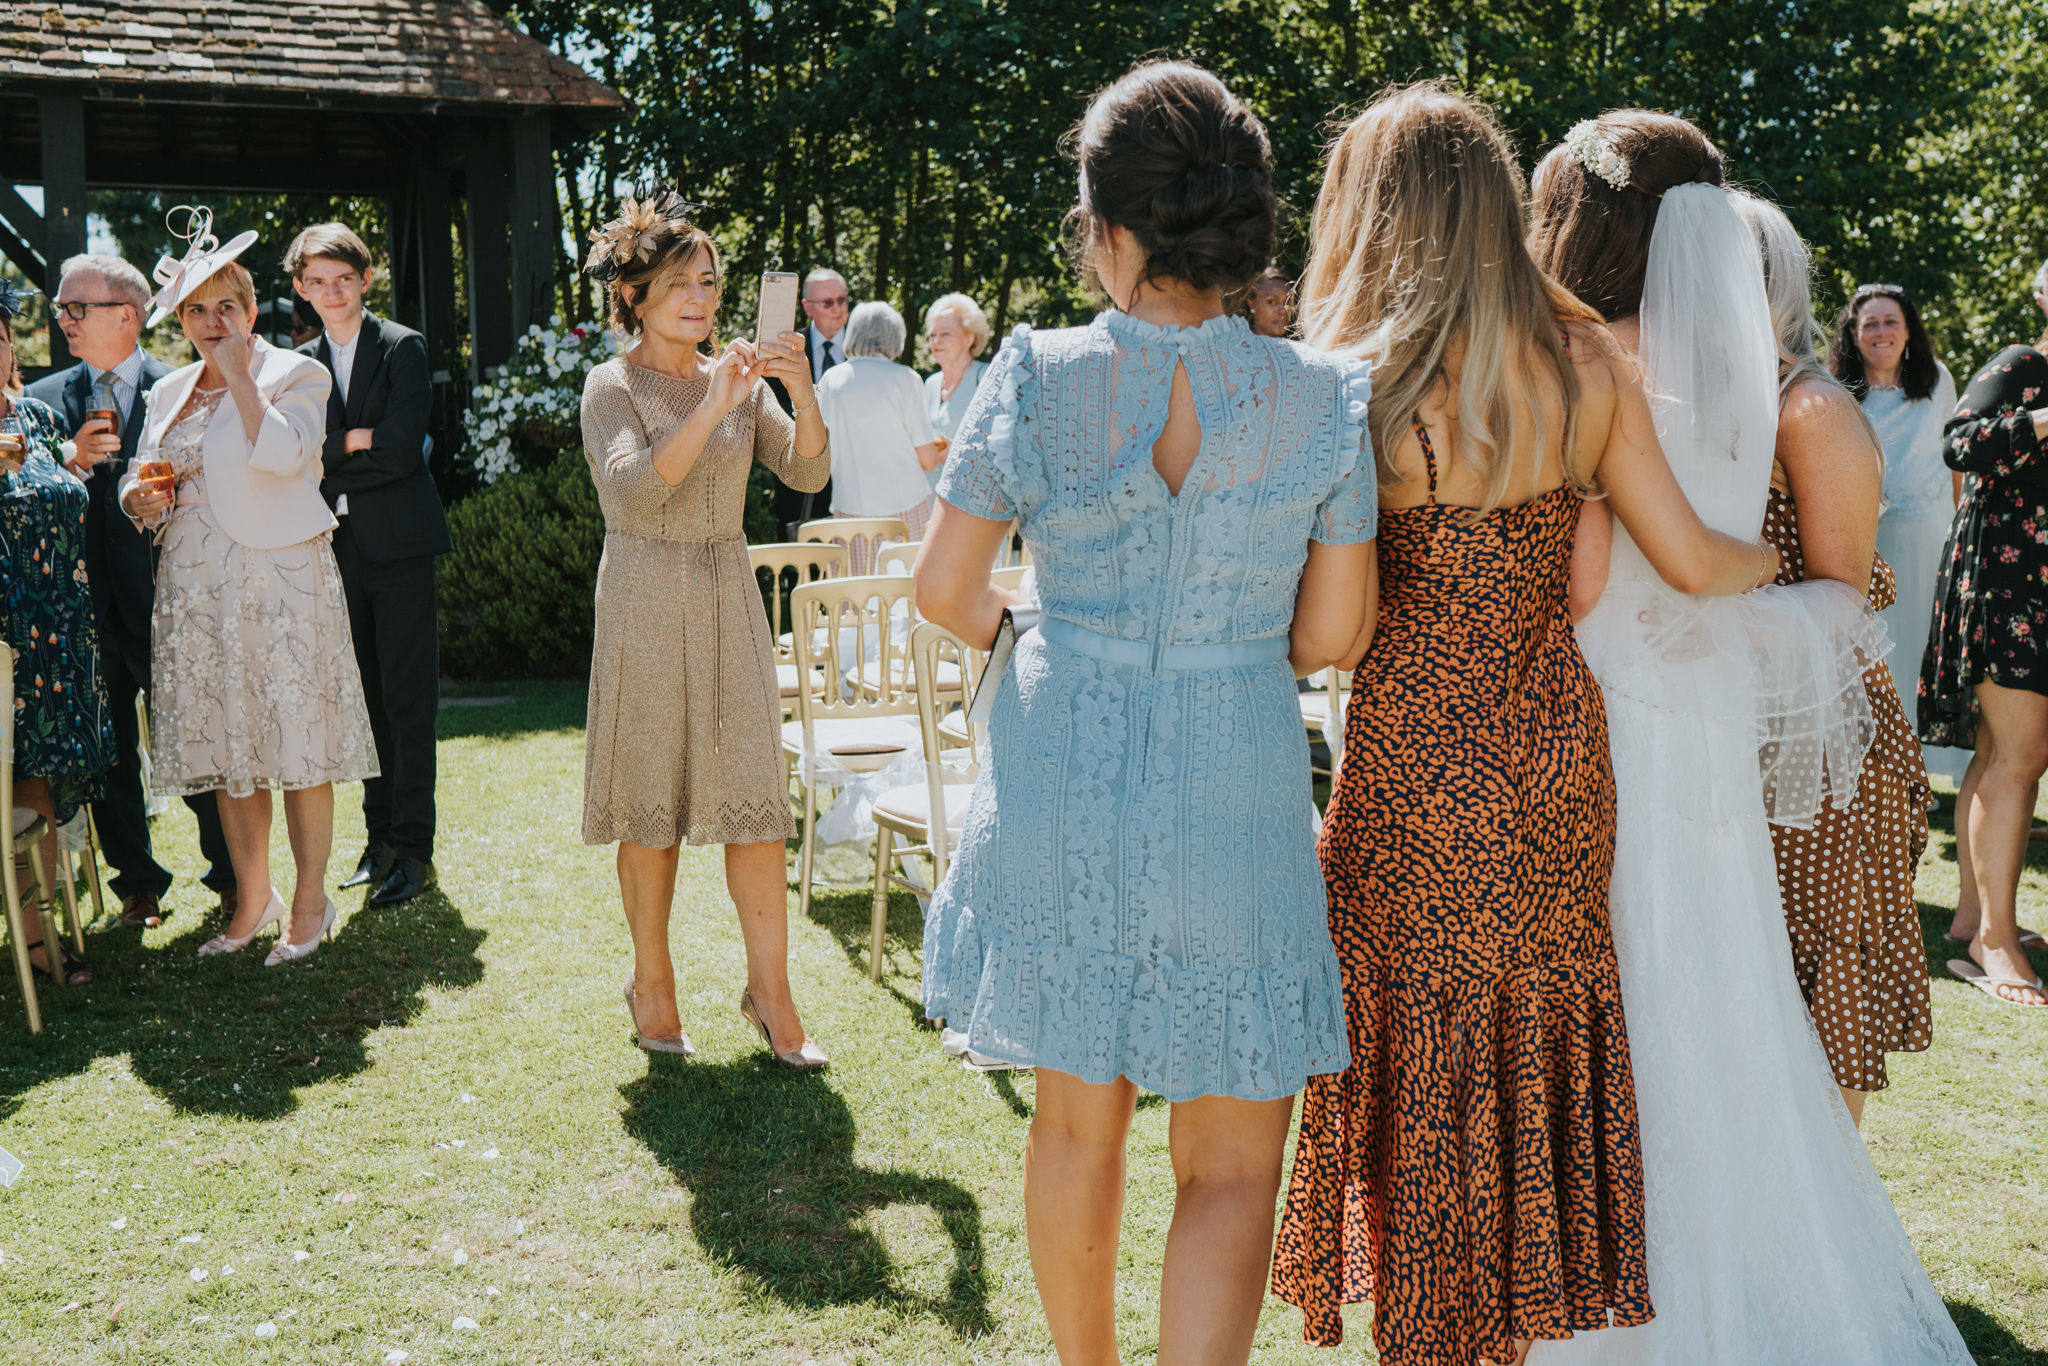 Sophie-Christian-Prested-Hall-DIY-Boho-Outdoor-Wedding-Grace-Elizabeth-Alternative-Wedding-Photographer-Colchester-Essex (54 of 113).jpg